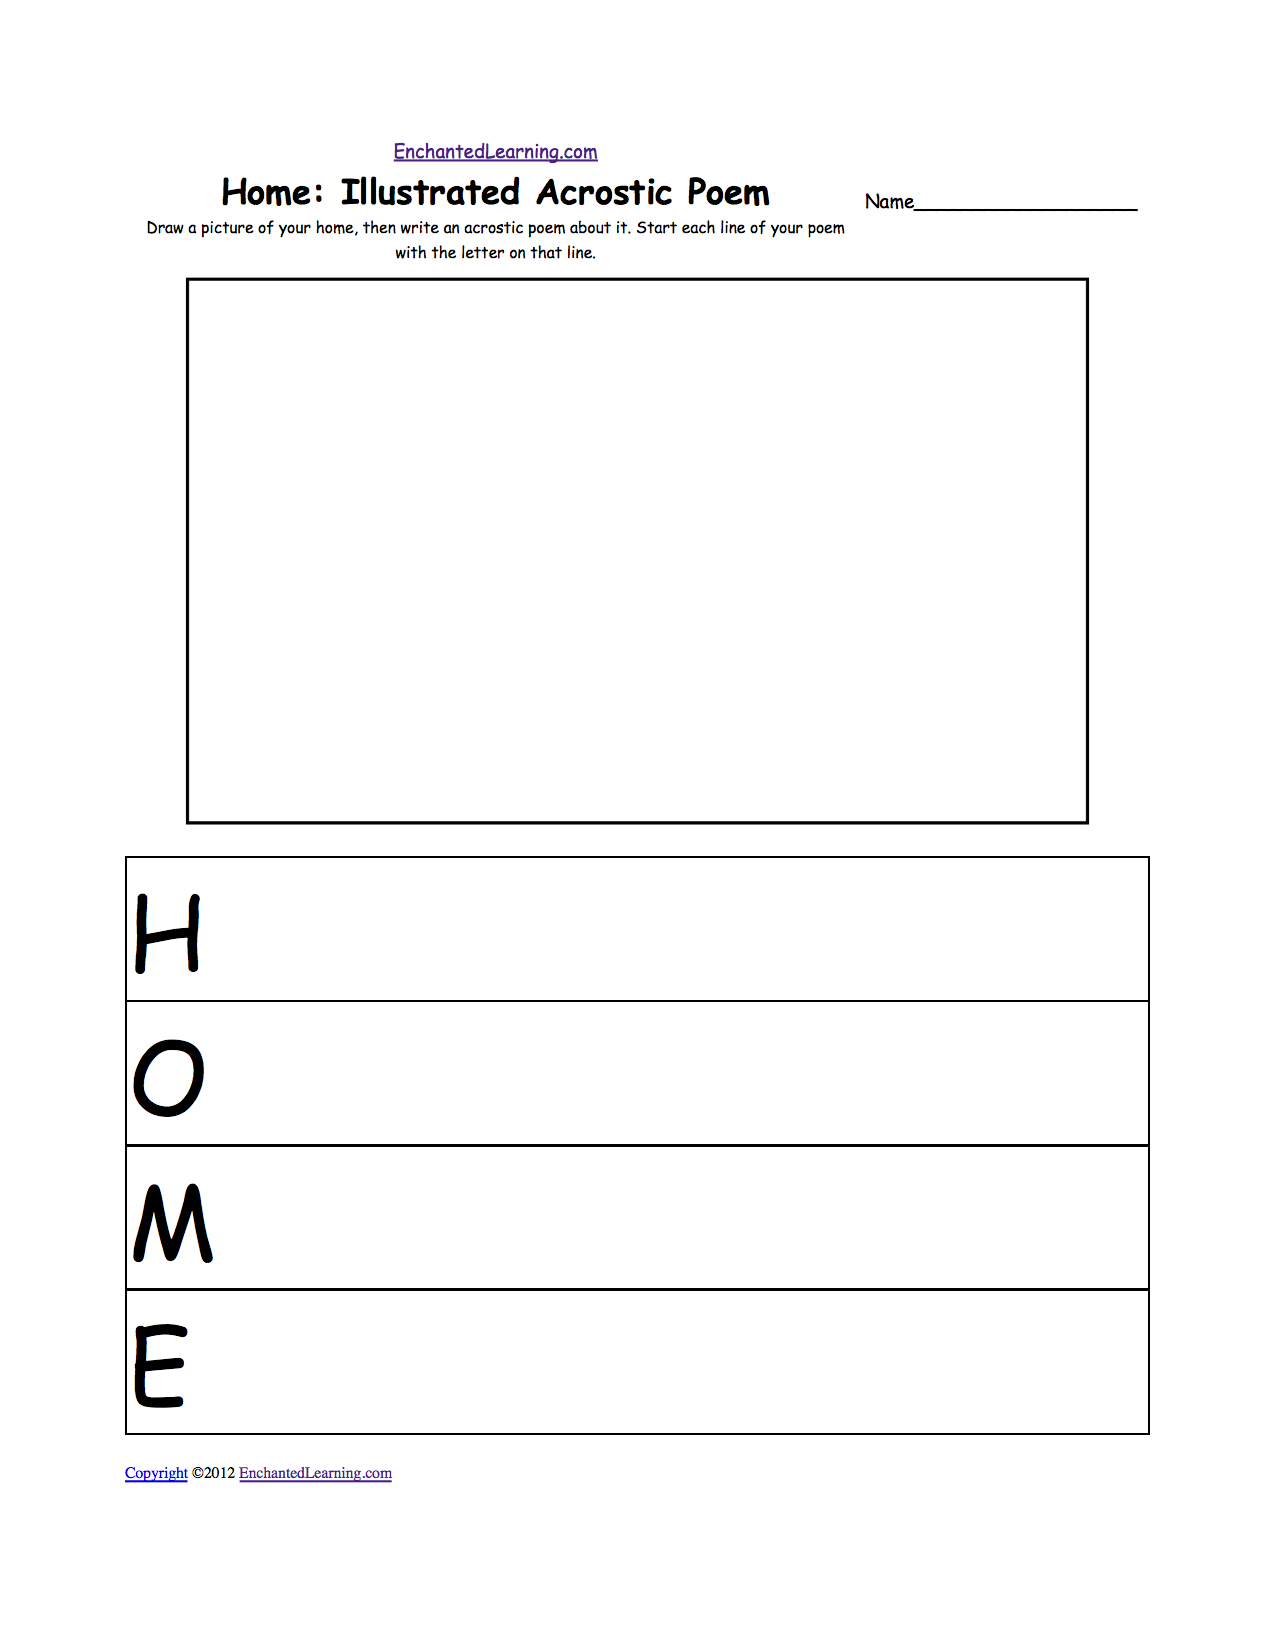 Illustrated Acrostic Poem Worksheets: Worksheet Printout ...